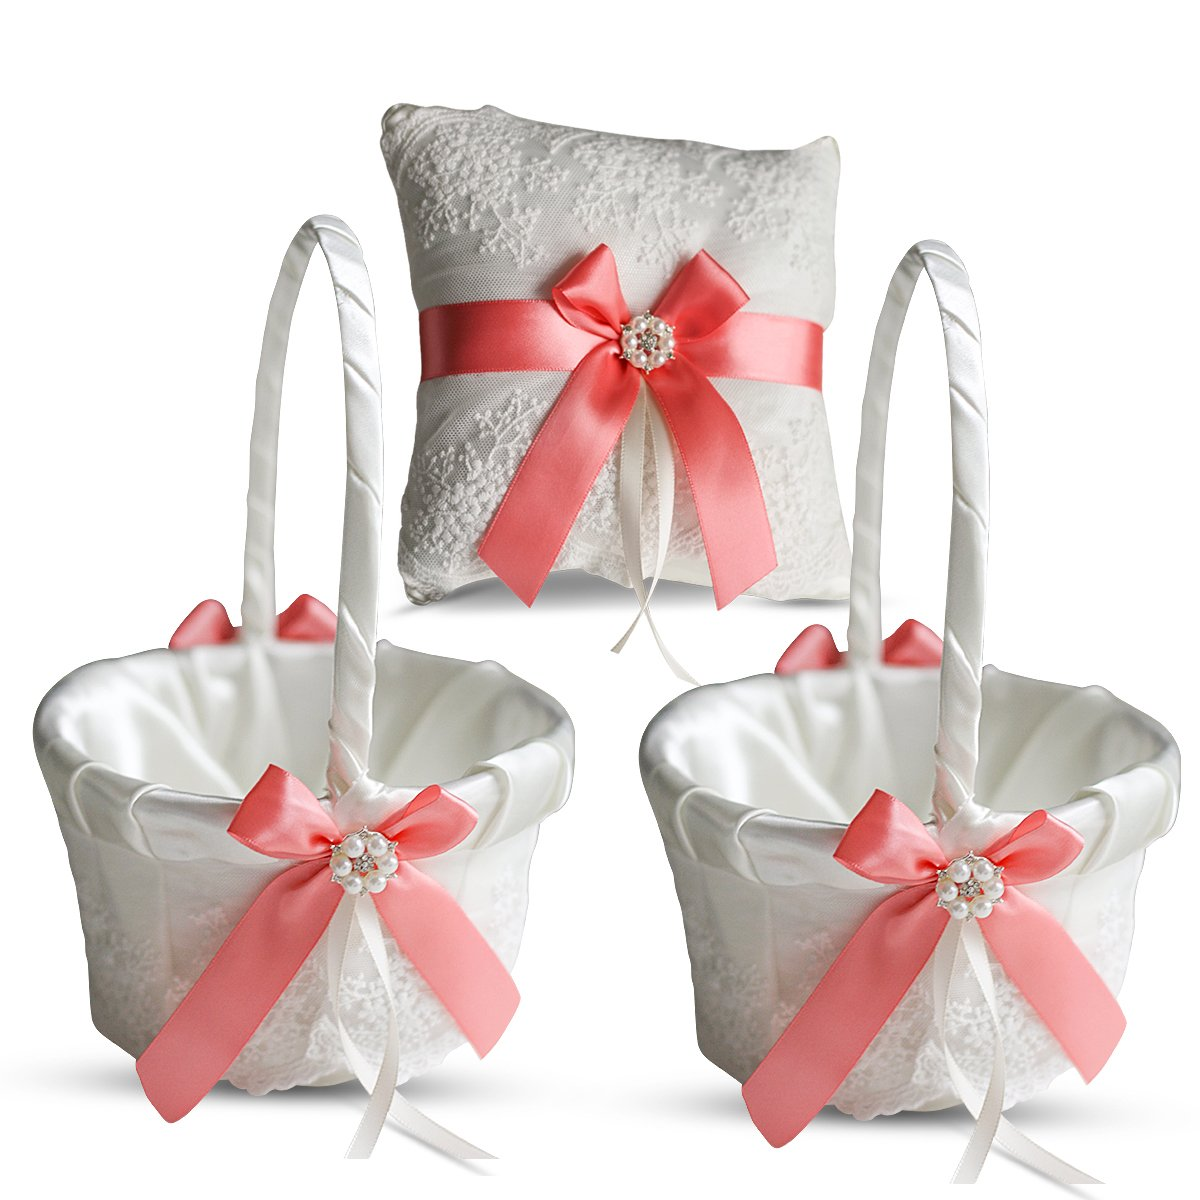 Alex Emotions Ivory Ring Bearer Pillow and Basket Set | Lace Collection | Flower Girl & Welcome Basket for Guest | Handmade Wedding Baskets & Pillows (Coral)